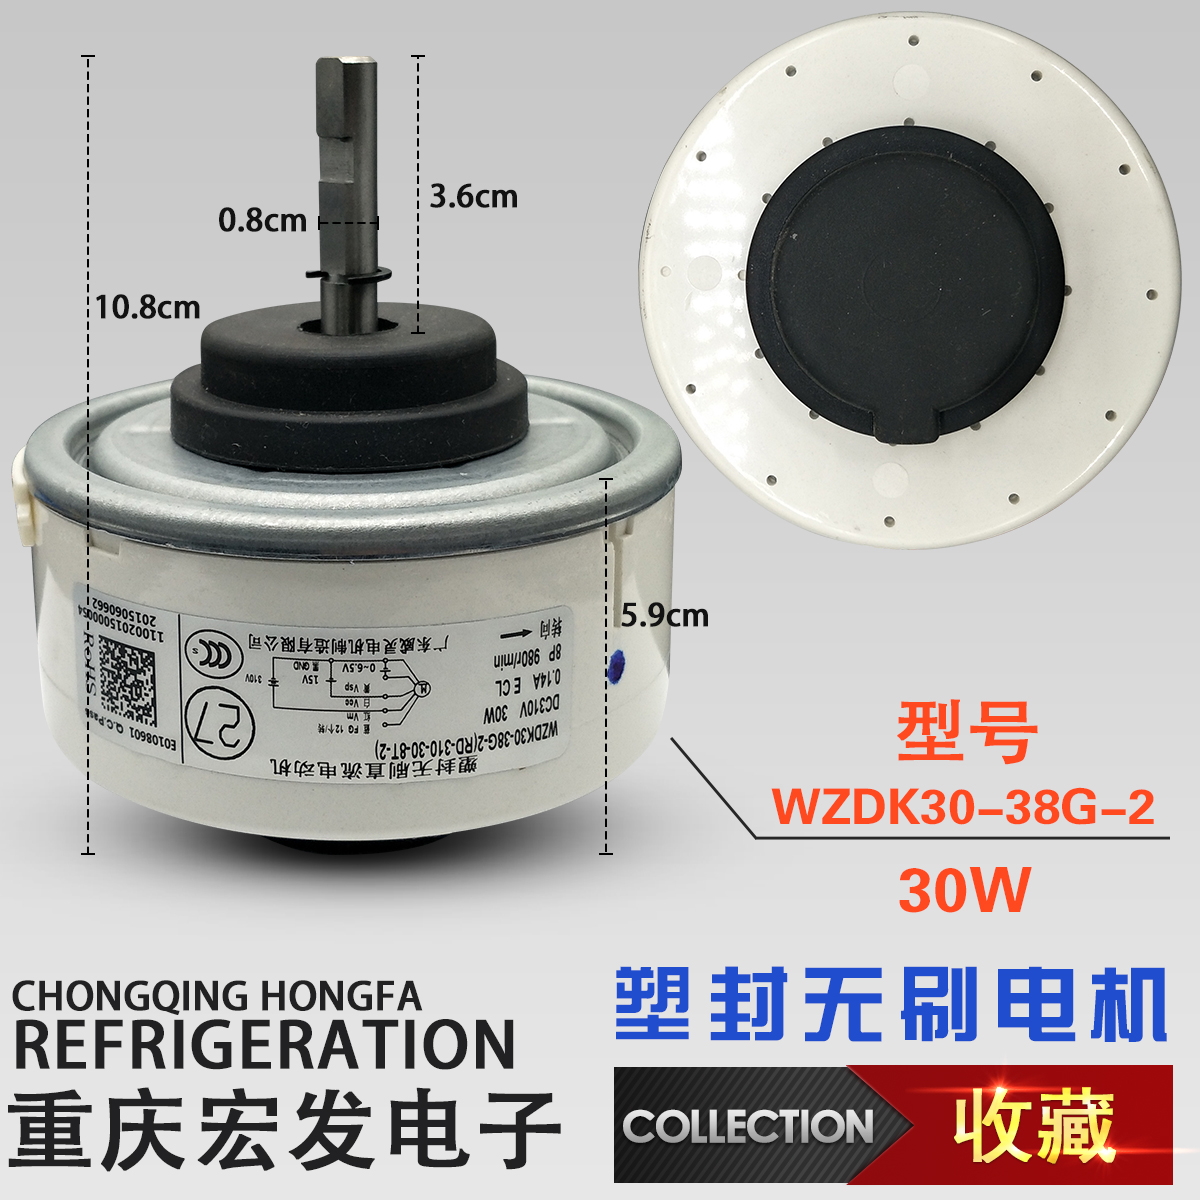 Air Conditioner Motor 30W Brushless DC Motor WZDK30-38G-2(RD-310-30-8T-2)Air Conditioner Motor 30W Brushless DC Motor WZDK30-38G-2(RD-310-30-8T-2)